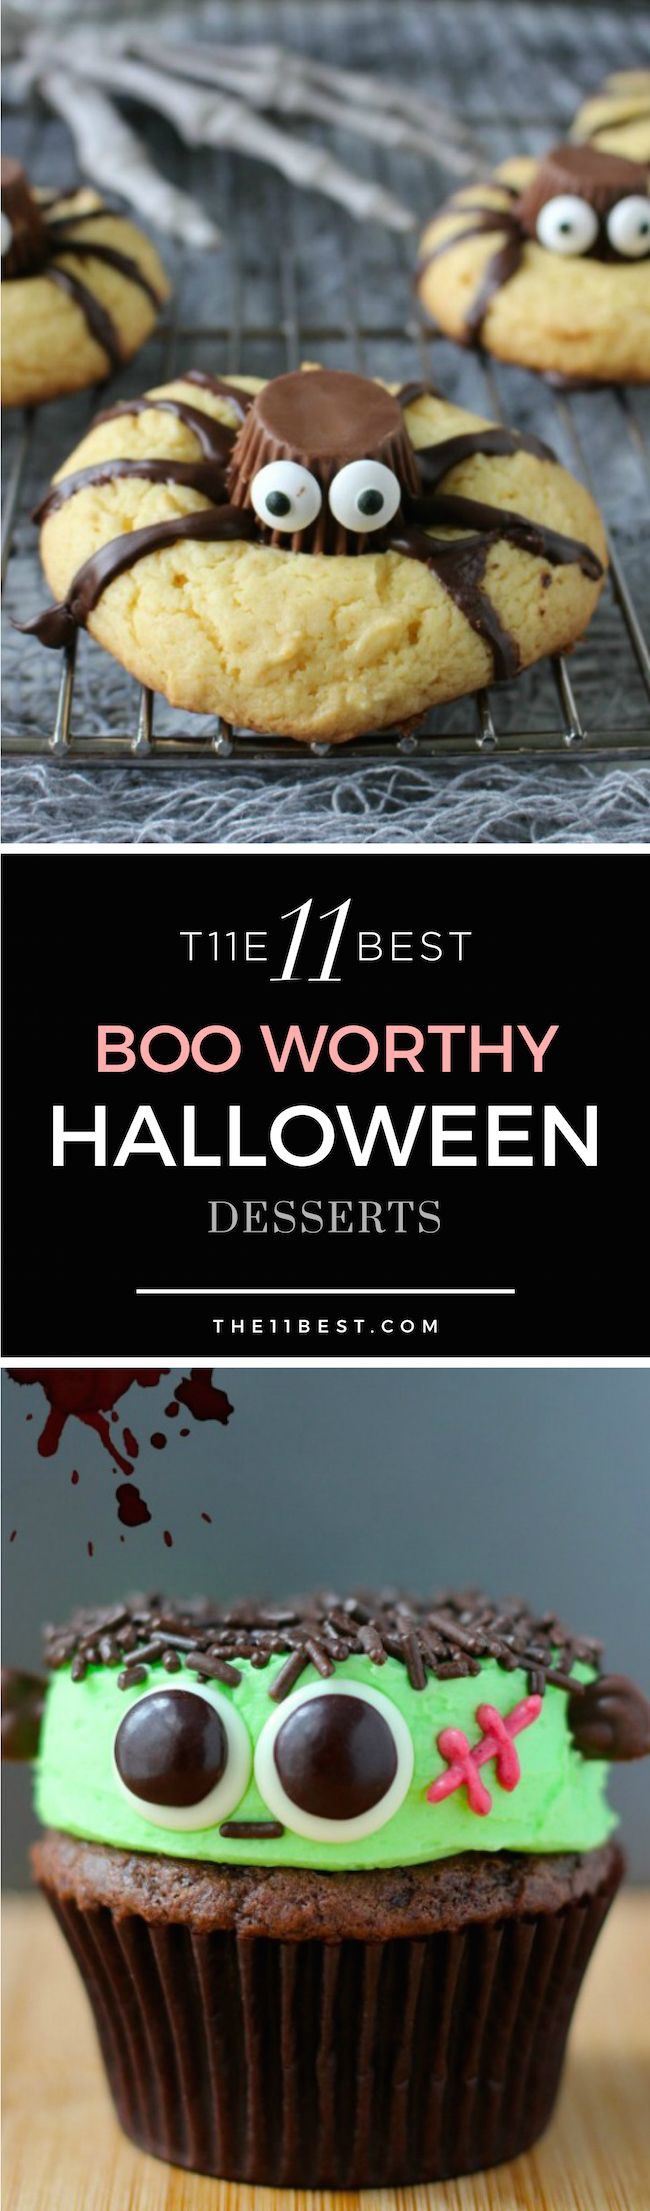 The 11 Best BOO WORTHY DIY Halloween Dessert ideas and recipes.